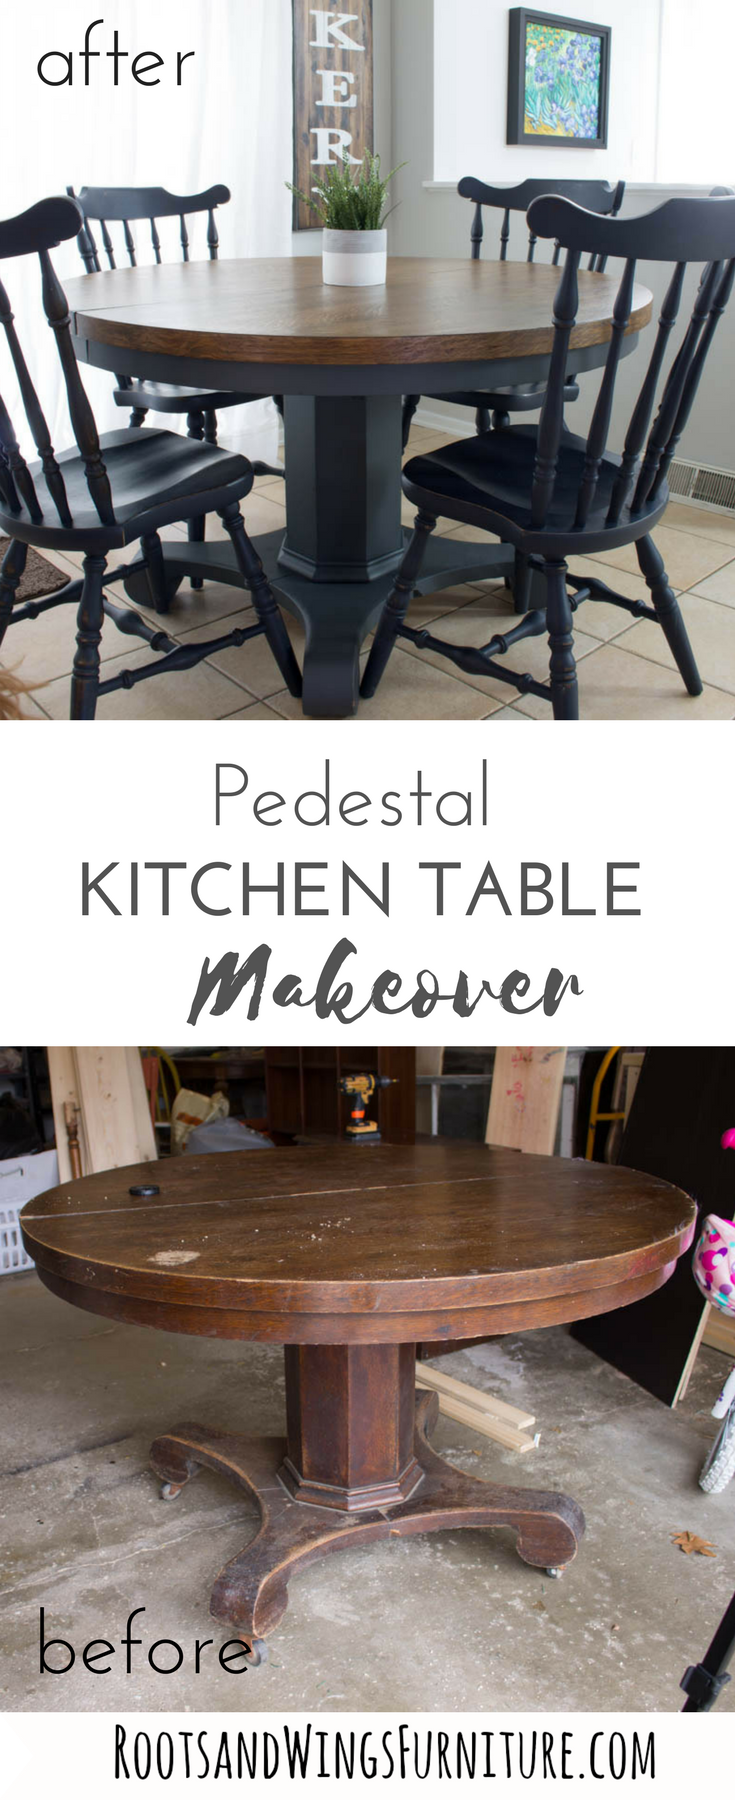 Pedestal Kitchen Table Makeover #kitchenfurniture